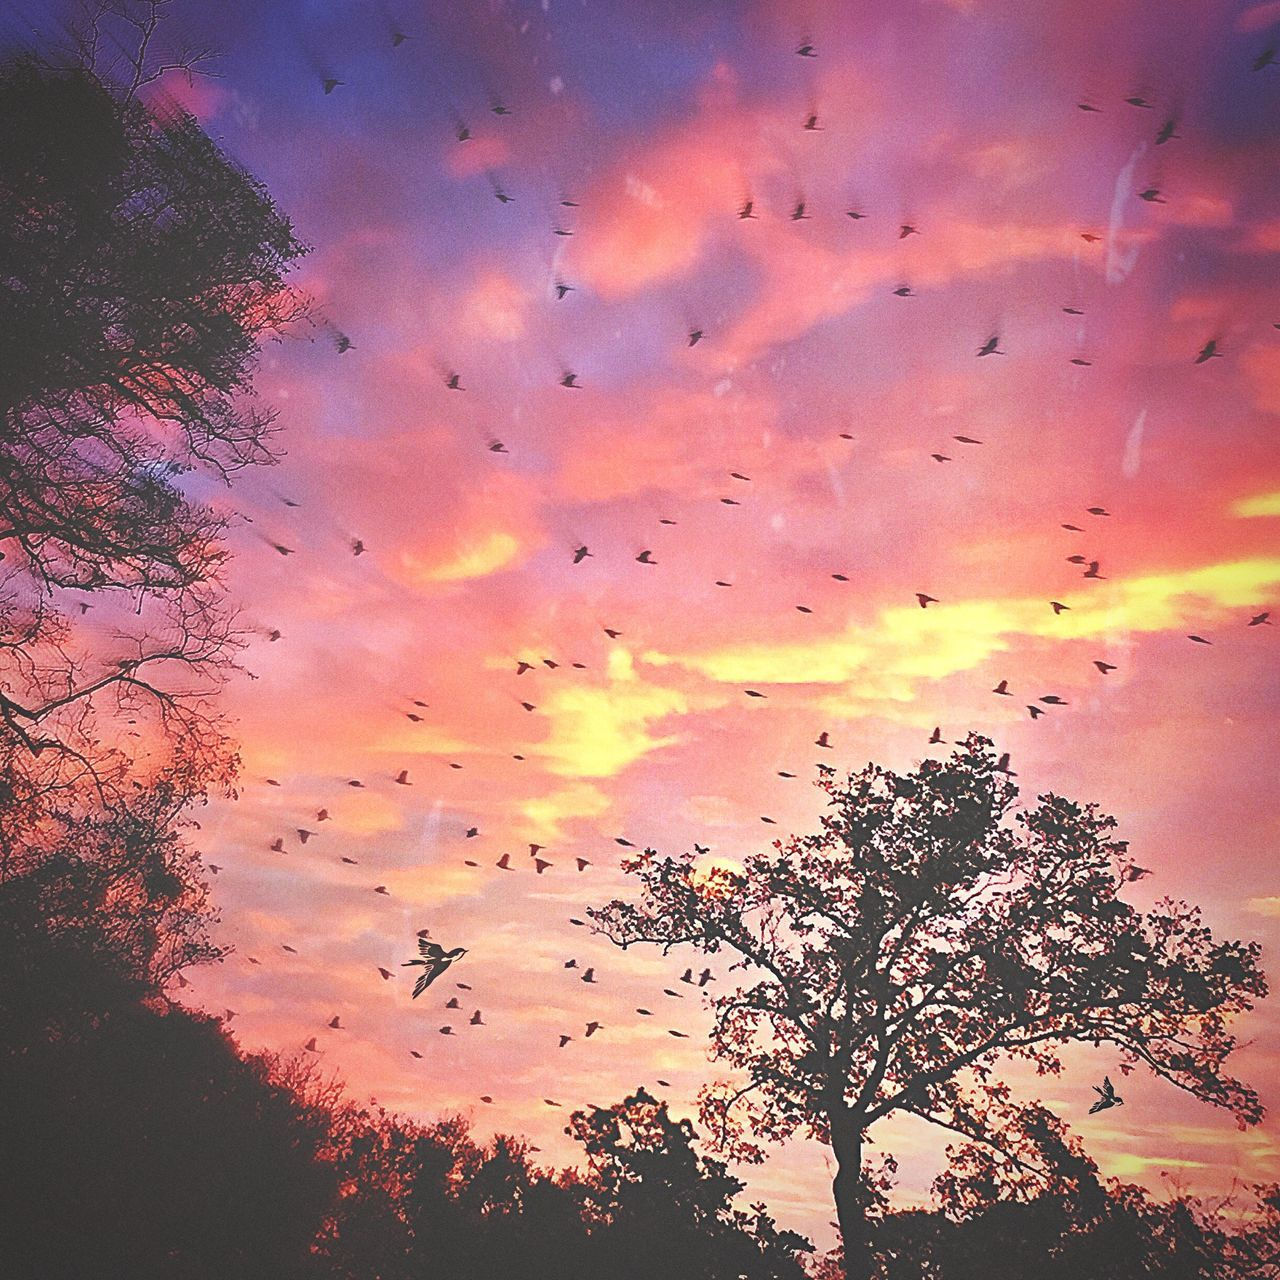 sky, tree, sunset, nature, large group of animals, beauty in nature, scenics, silhouette, tranquil scene, cloud - sky, no people, low angle view, flying, outdoors, flock of birds, rainbow, multi colored, animal themes, tranquility, migrating, animals in the wild, bird, day